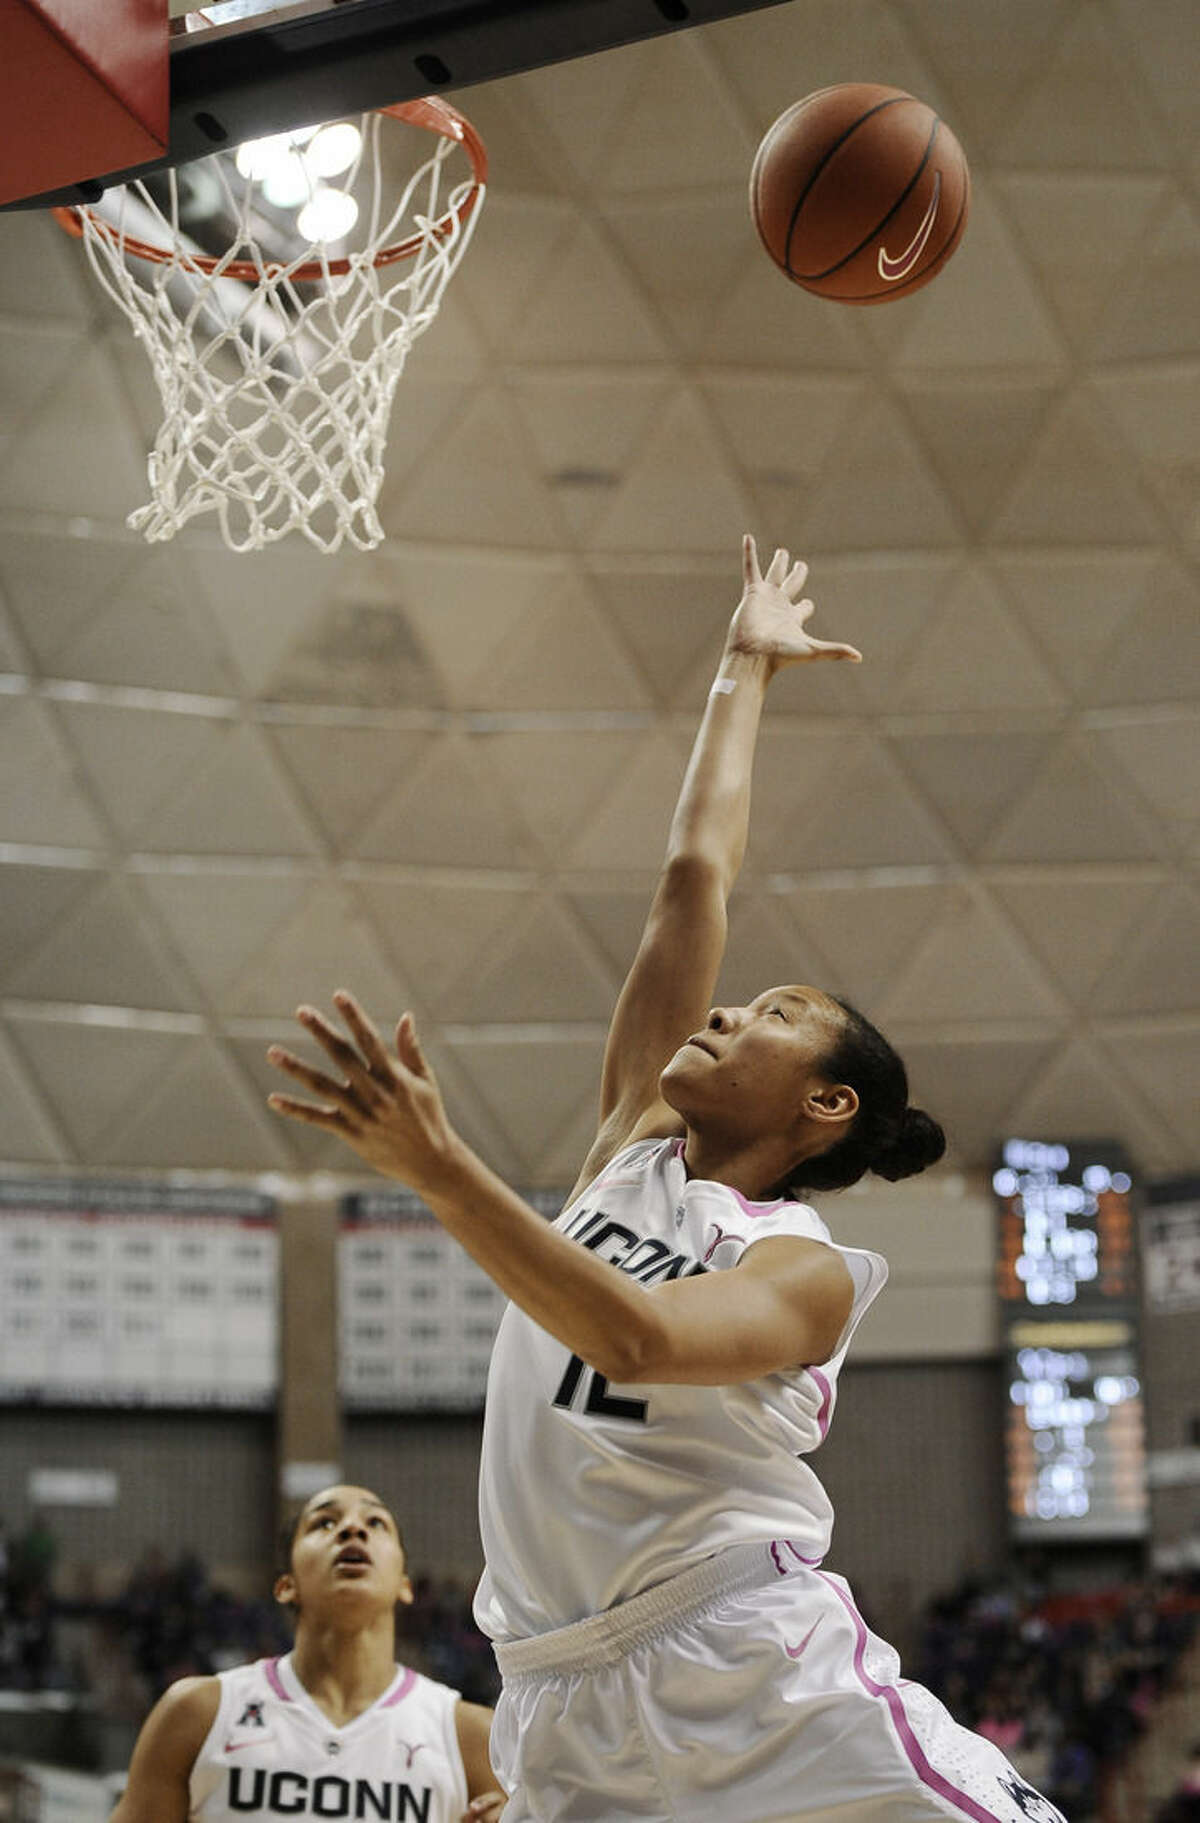 Connecticut's Saniya Chong shoots a basket during the second half of an NCAA college basketball game against Tulane, Saturday, Feb. 14, 2015, in Storrs, Conn. UConn won 87-39. (AP Photo/Jessica Hill)